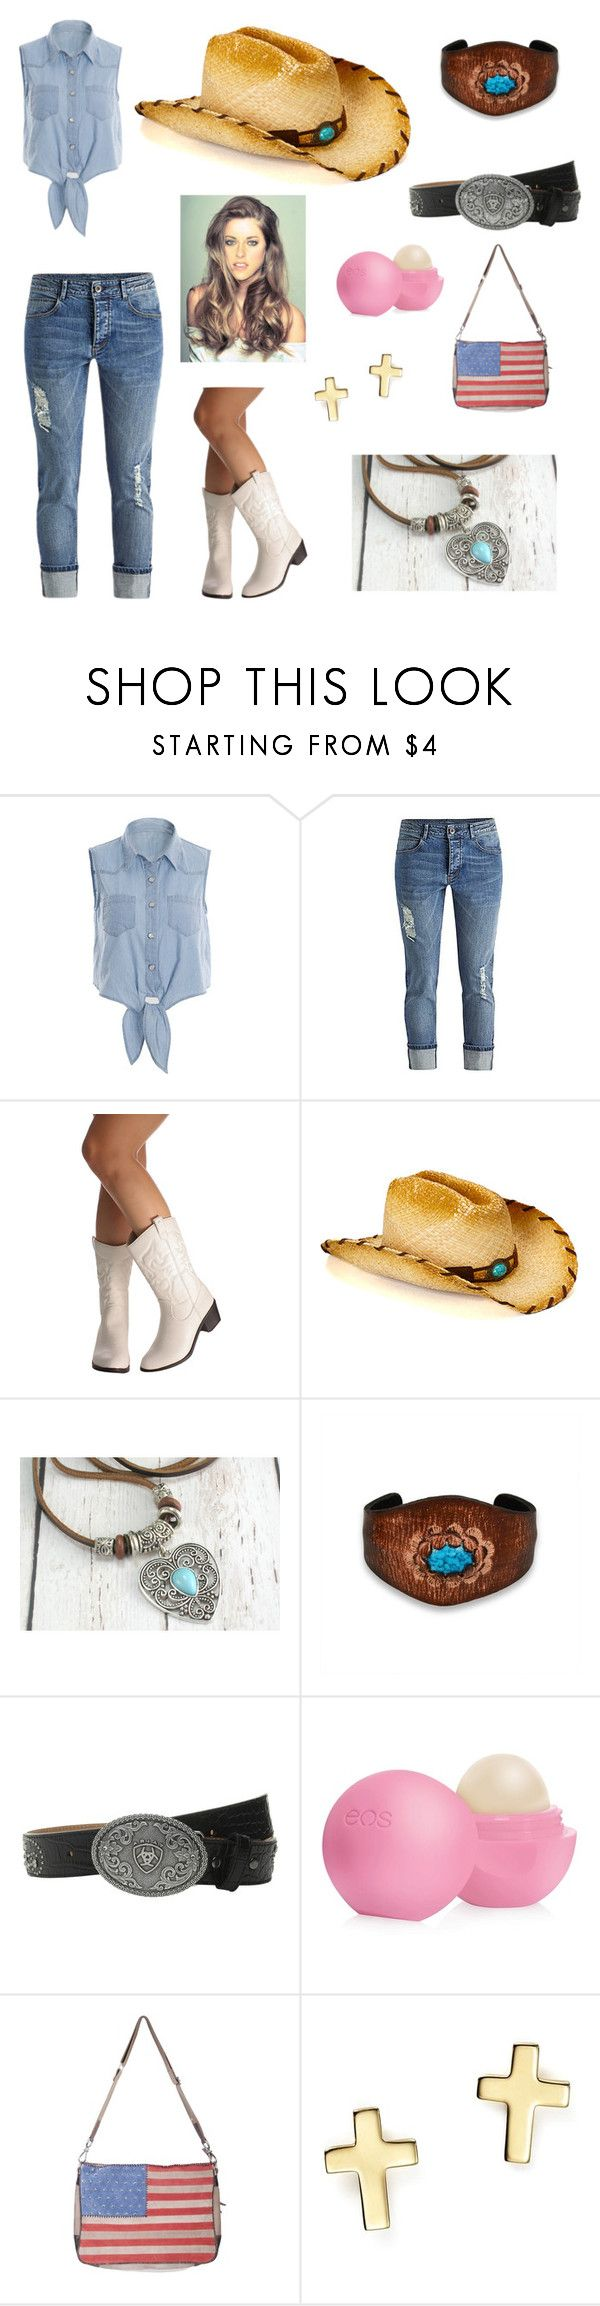 Cowgirl by elizabethdewitt on Polyvore featuring Scully, Bling Jewelry, Bloomingdale's, Ariat, Eos, women's clothing, women's fashion, women, female and woman